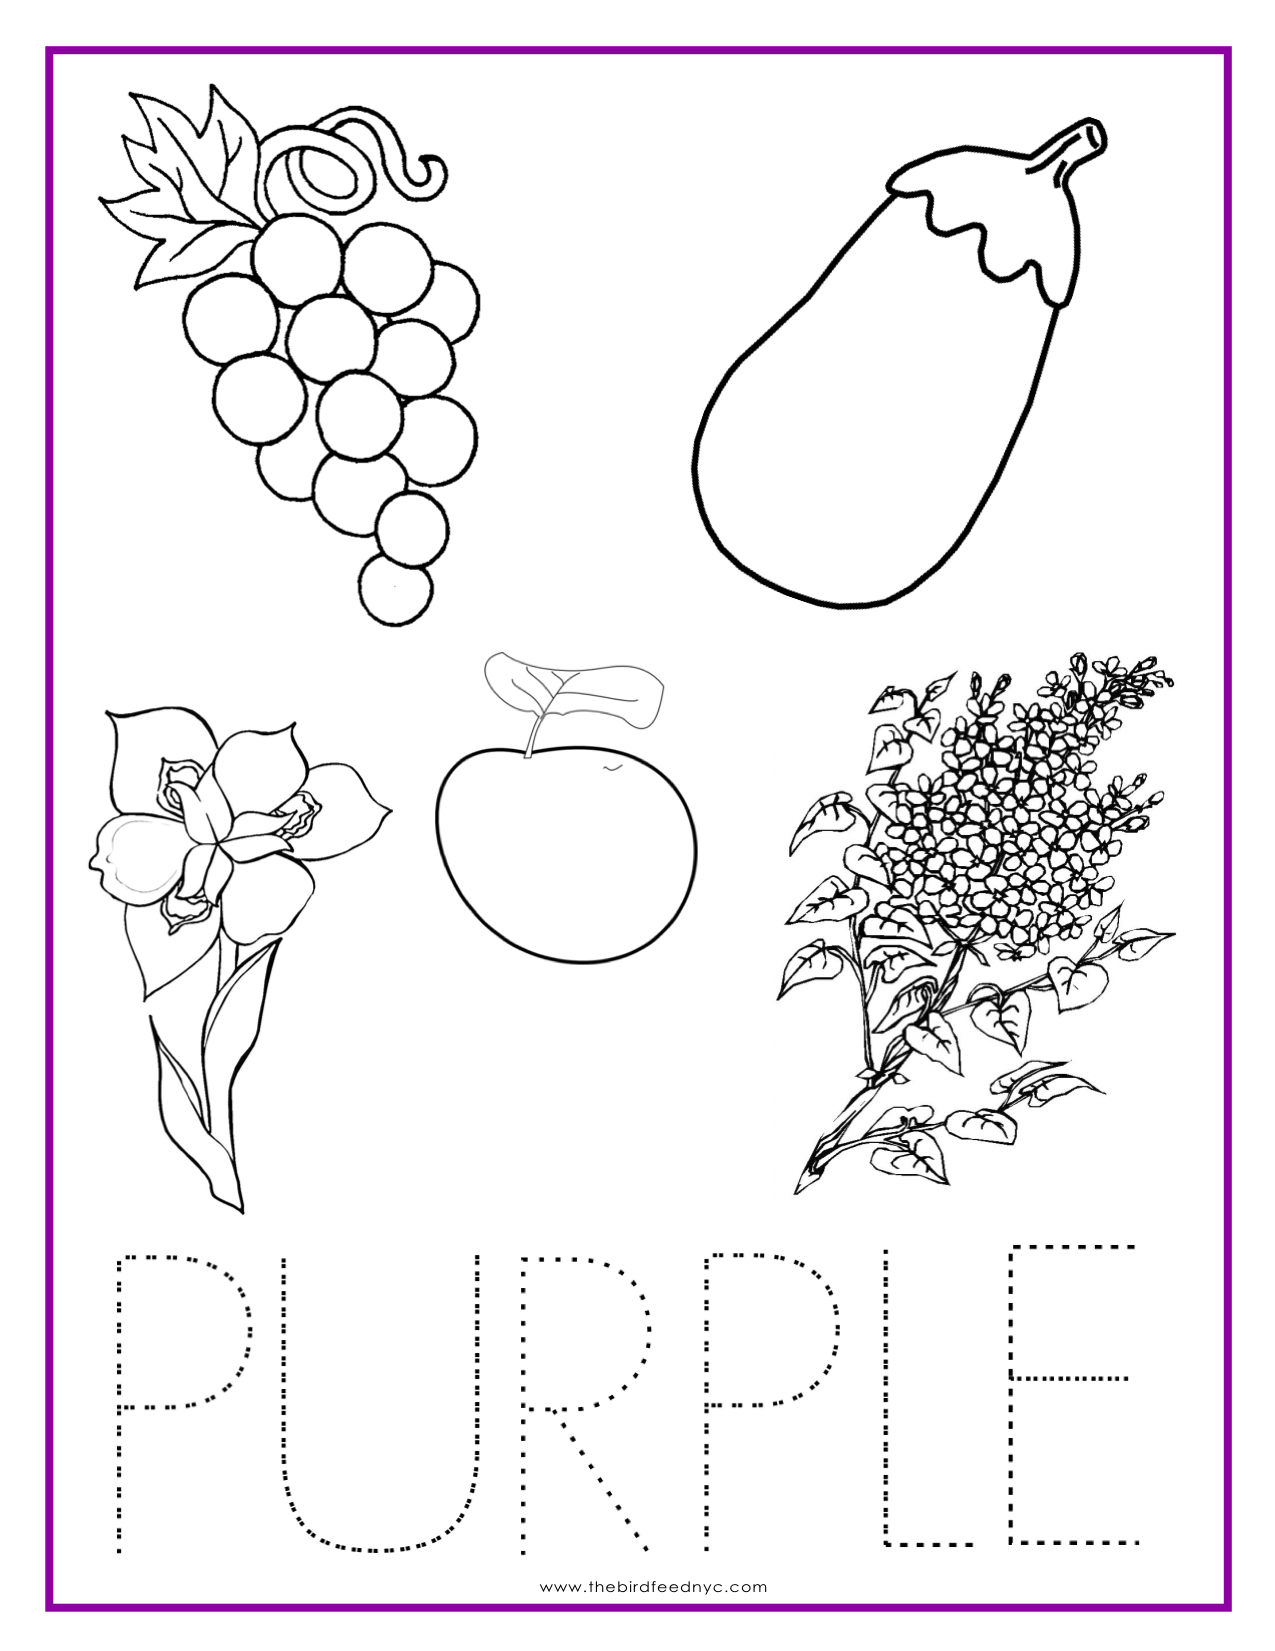 Printable Coloring Sheets Colour Activities For Children